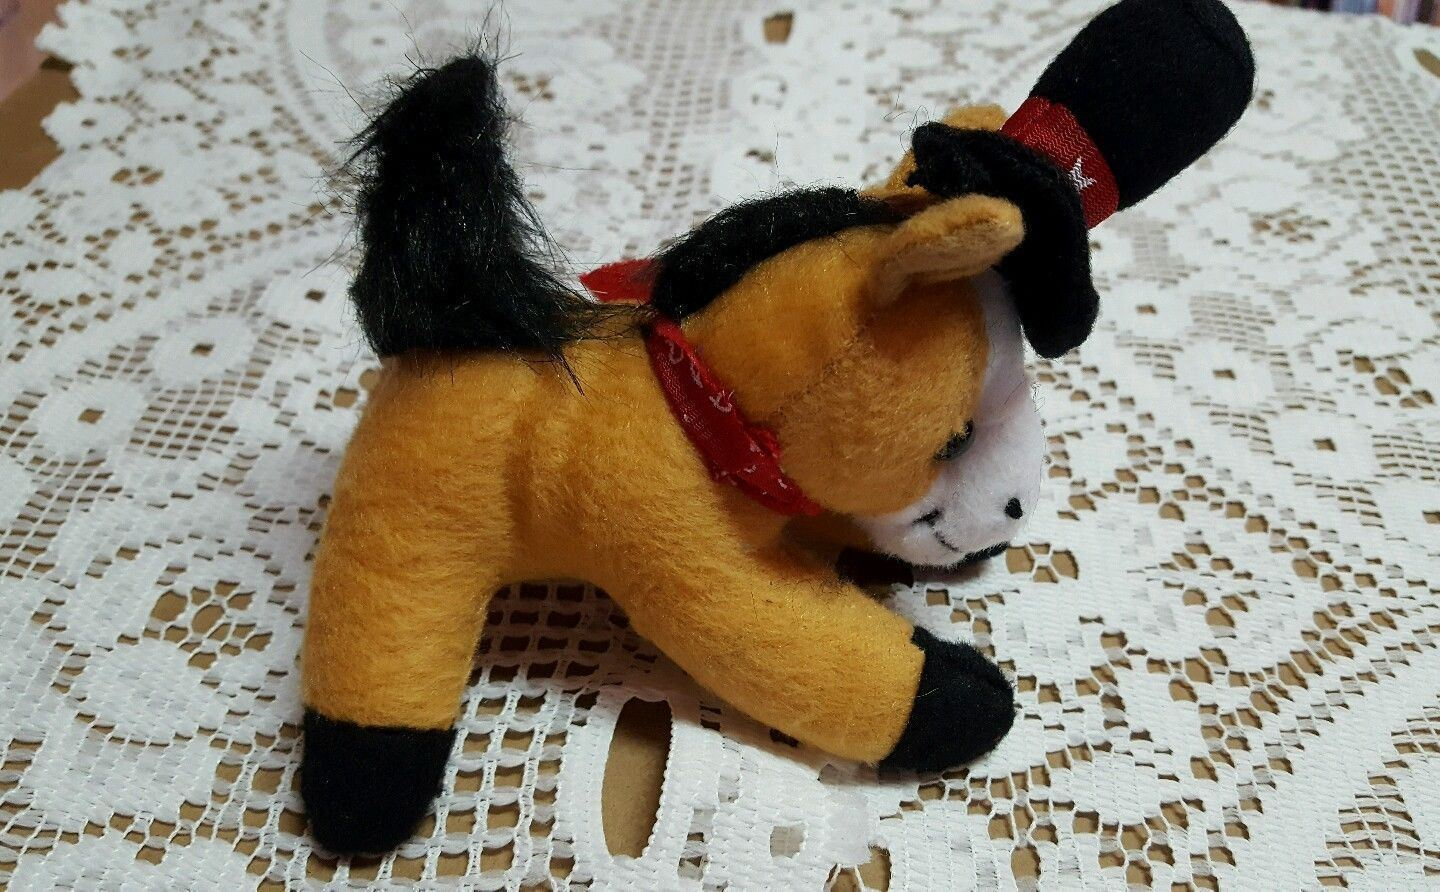 Four and a half inch stuffed horse black and red hat with stars red scarf